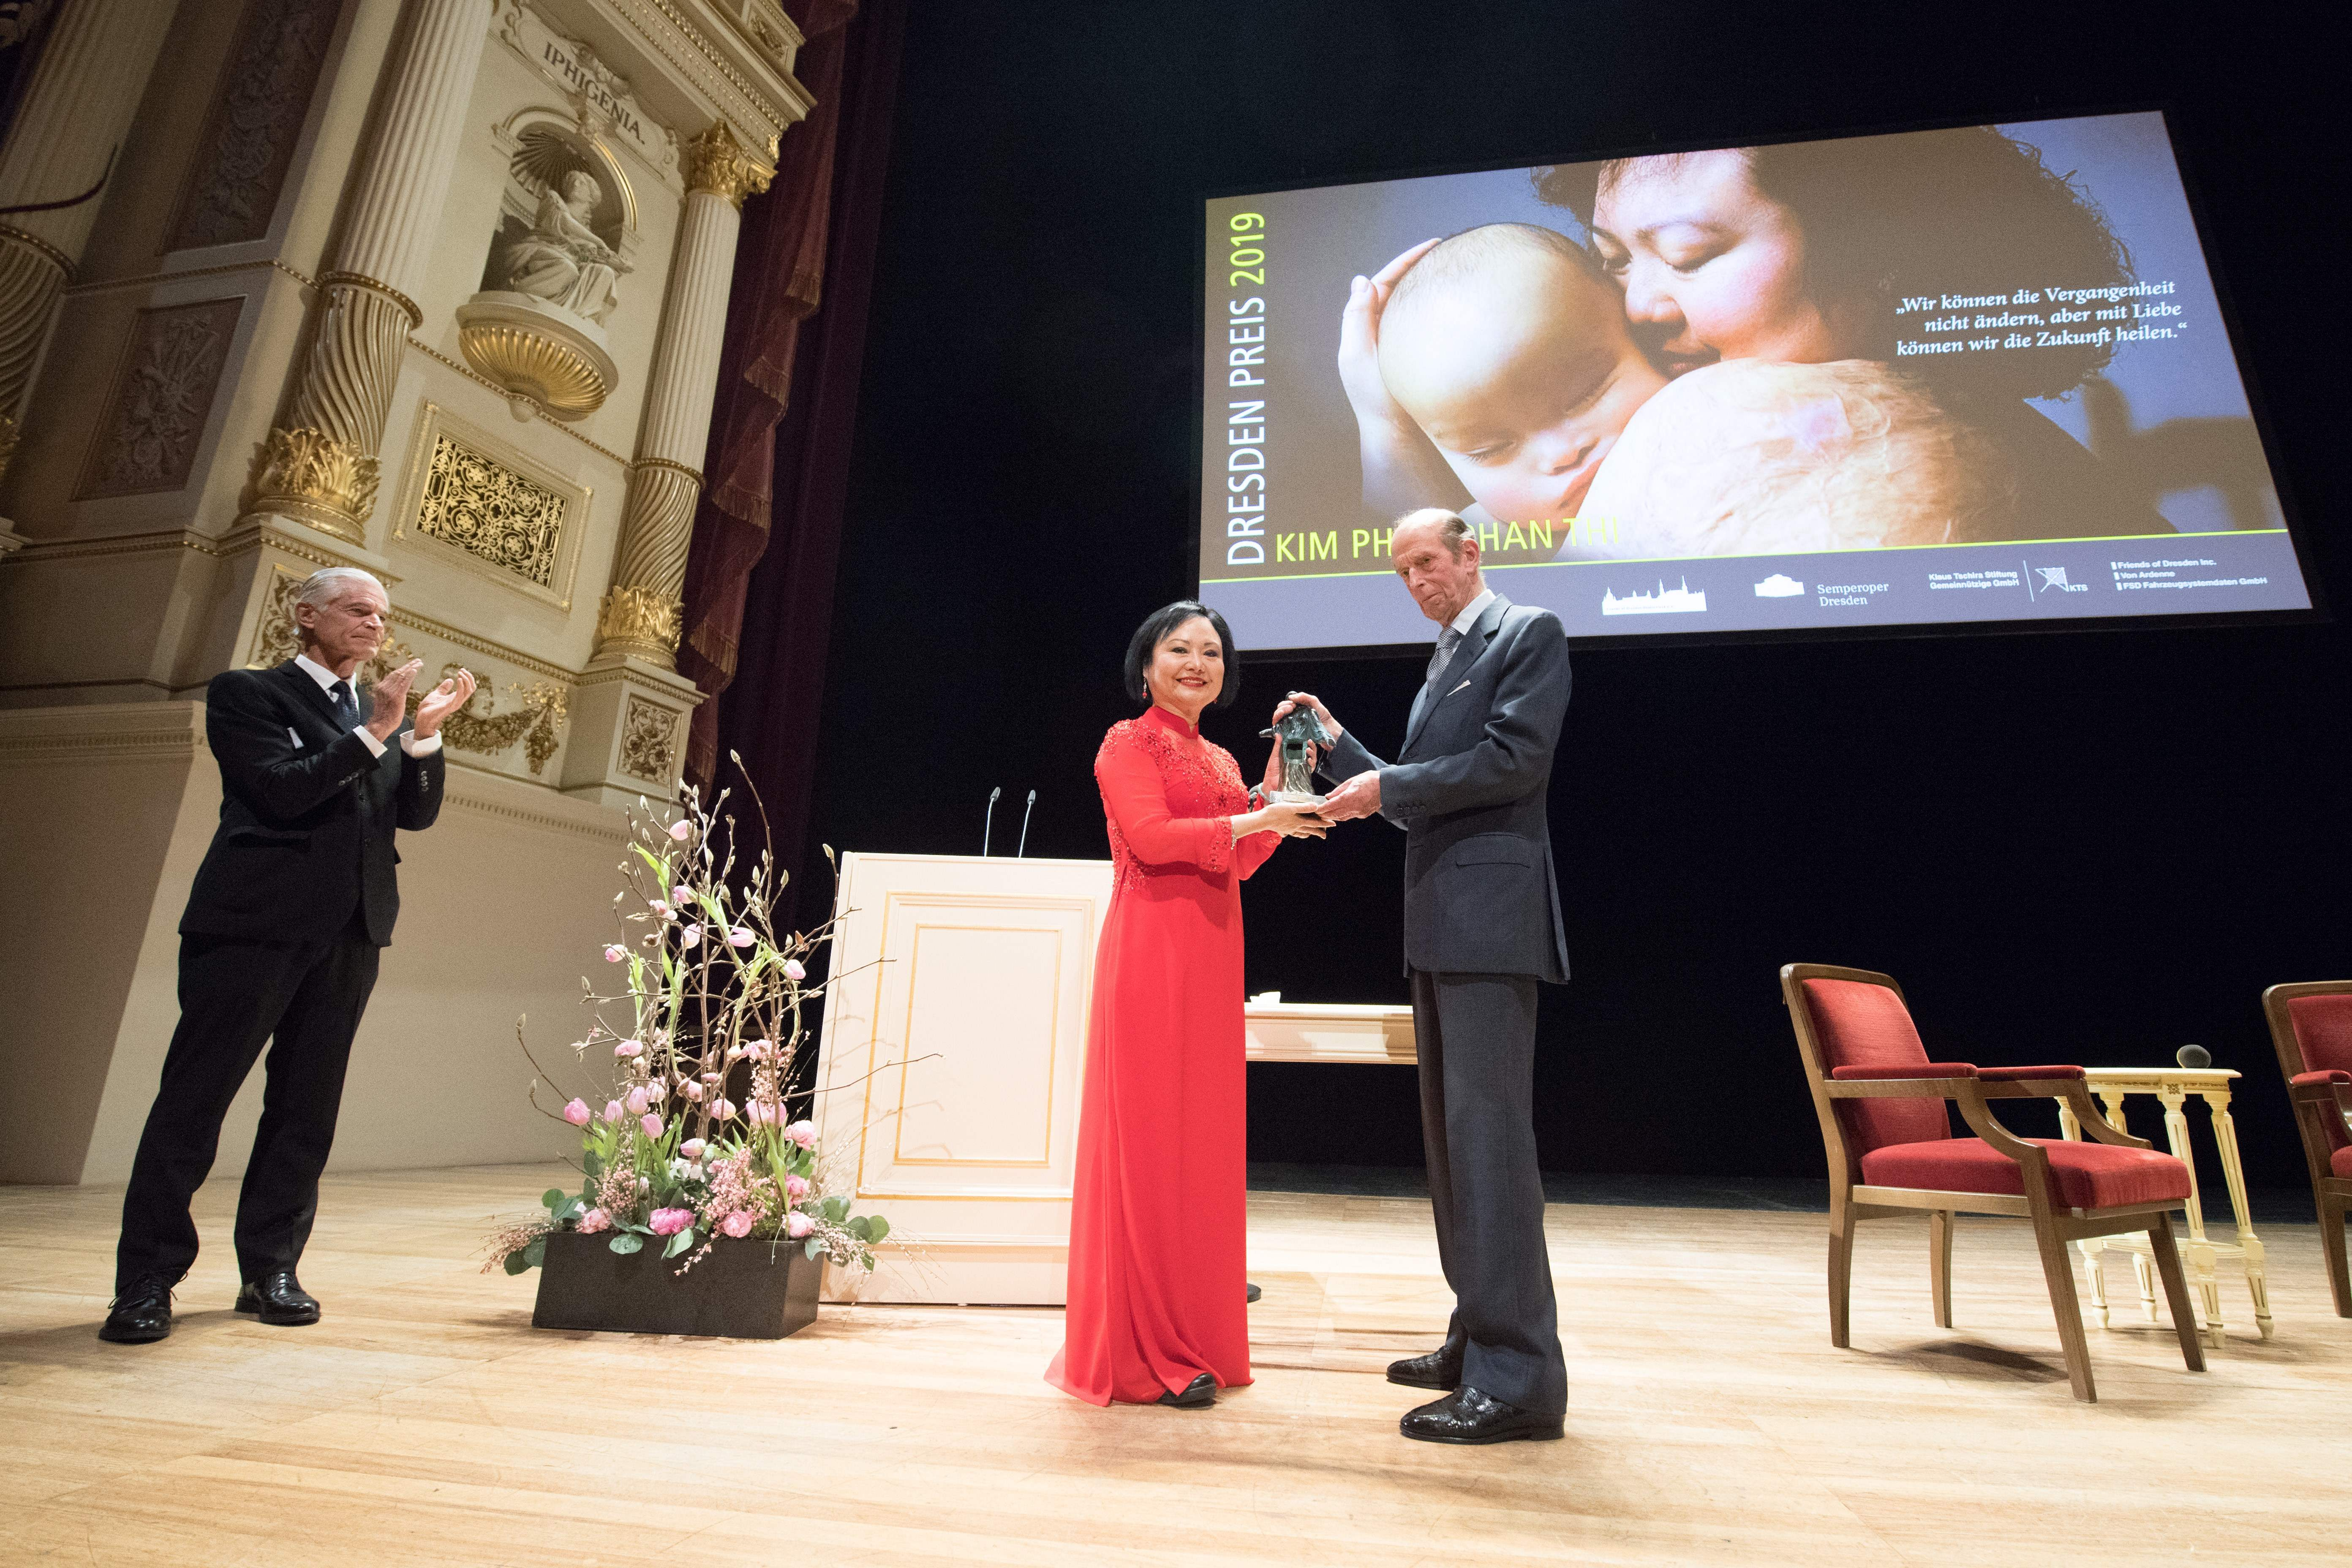 Kim Phuc Phan Thi receives the international peace prize at the Semper Opera in Dresden, Germany, on Feb. 11.